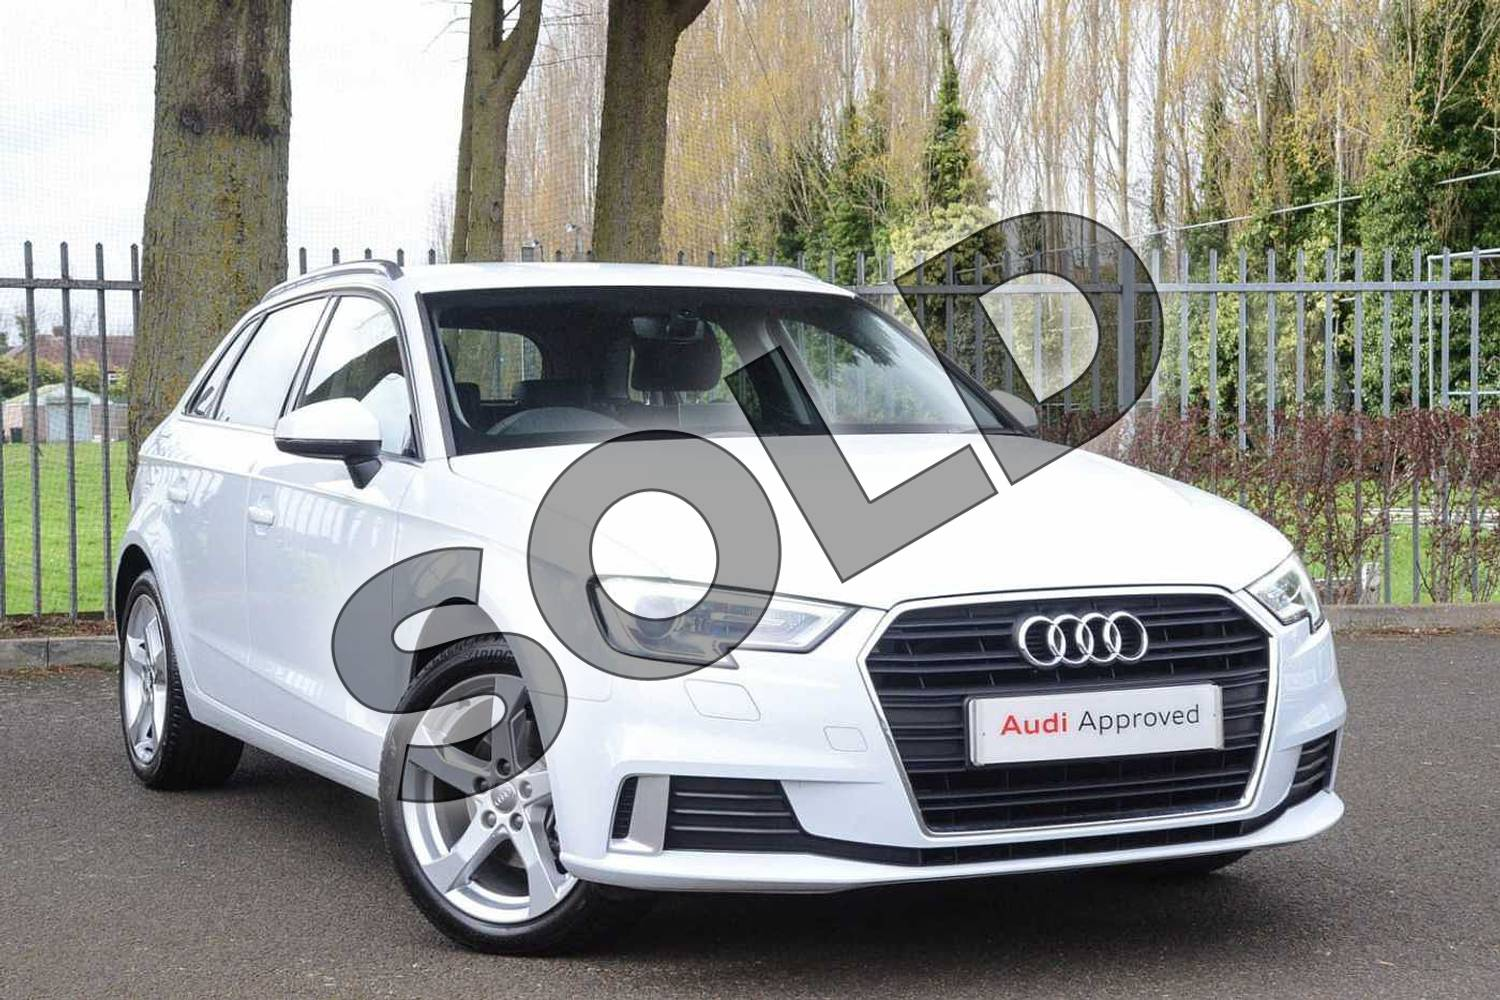 2018 Audi A3 Sportback 35 TFSI Sport 5dr S Tronic in Glacier White Metallic at Coventry Audi